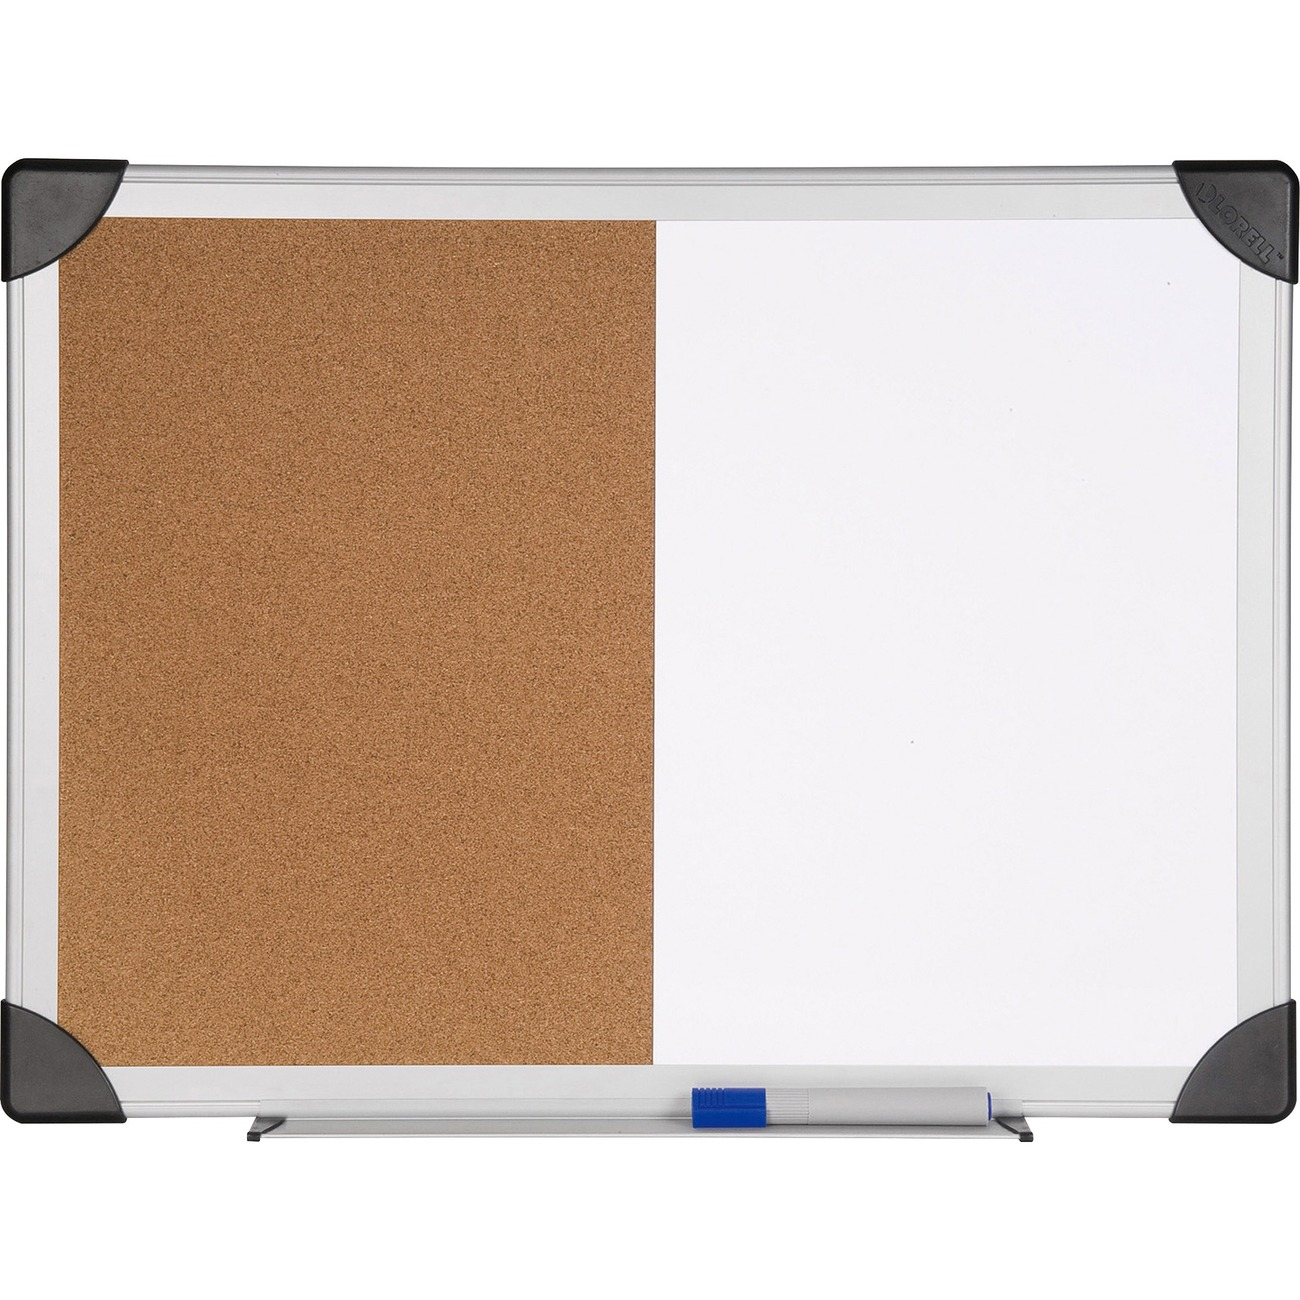 Kamloops Office Systems :: Office Supplies :: Boards & Easels ...